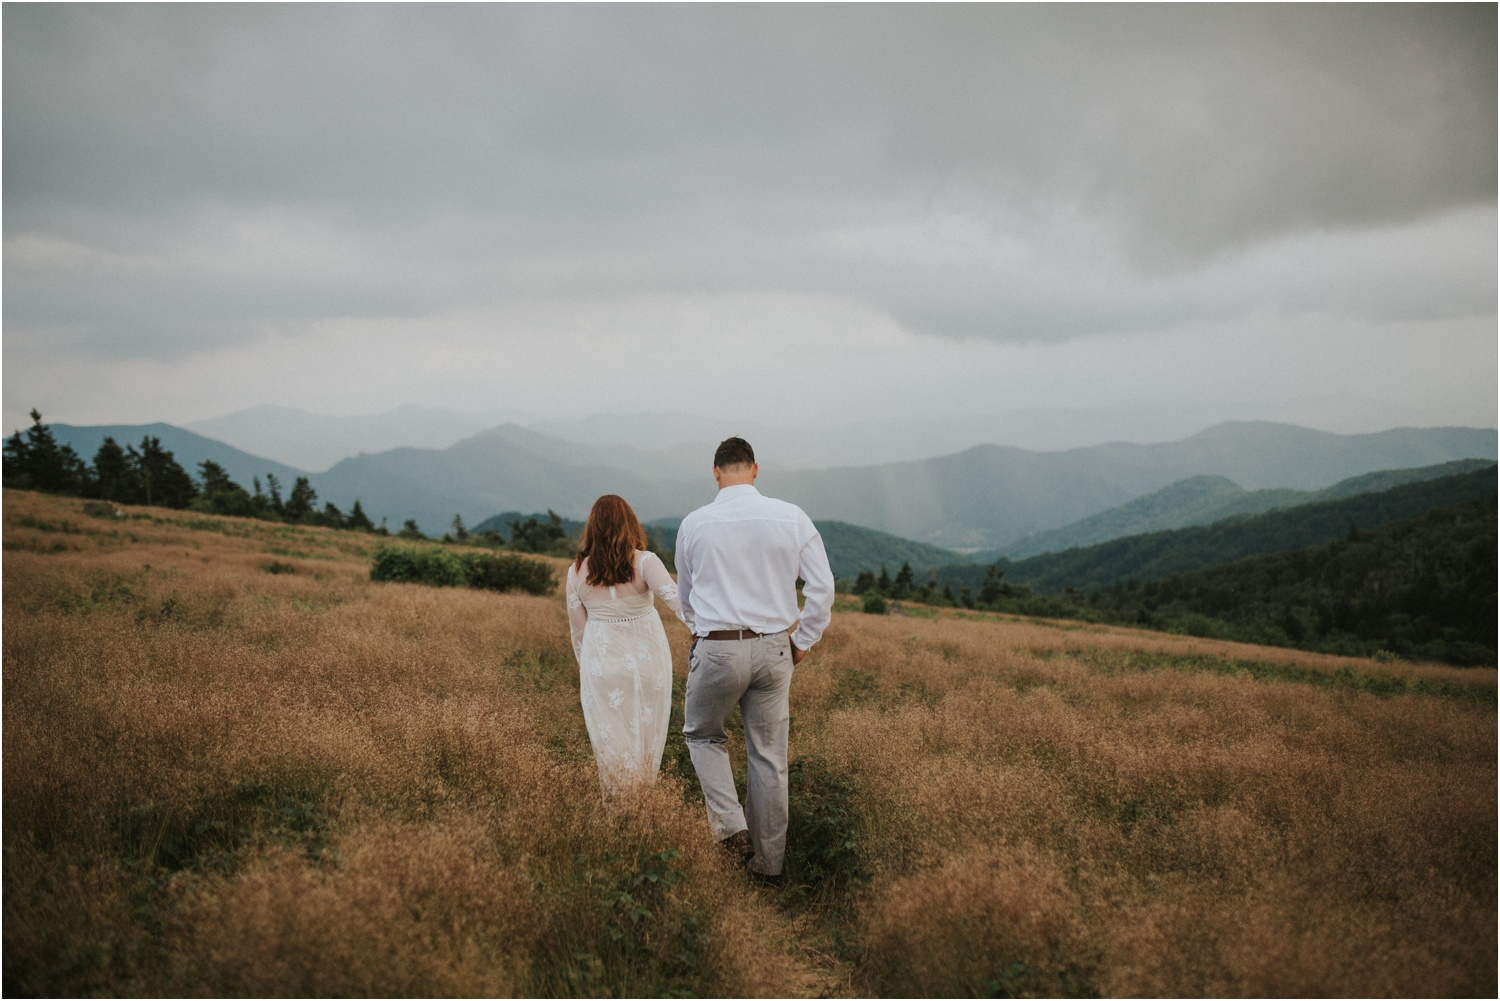 lovestoriesco-asheville-north-carolina-elopement-wedding-14.jpg